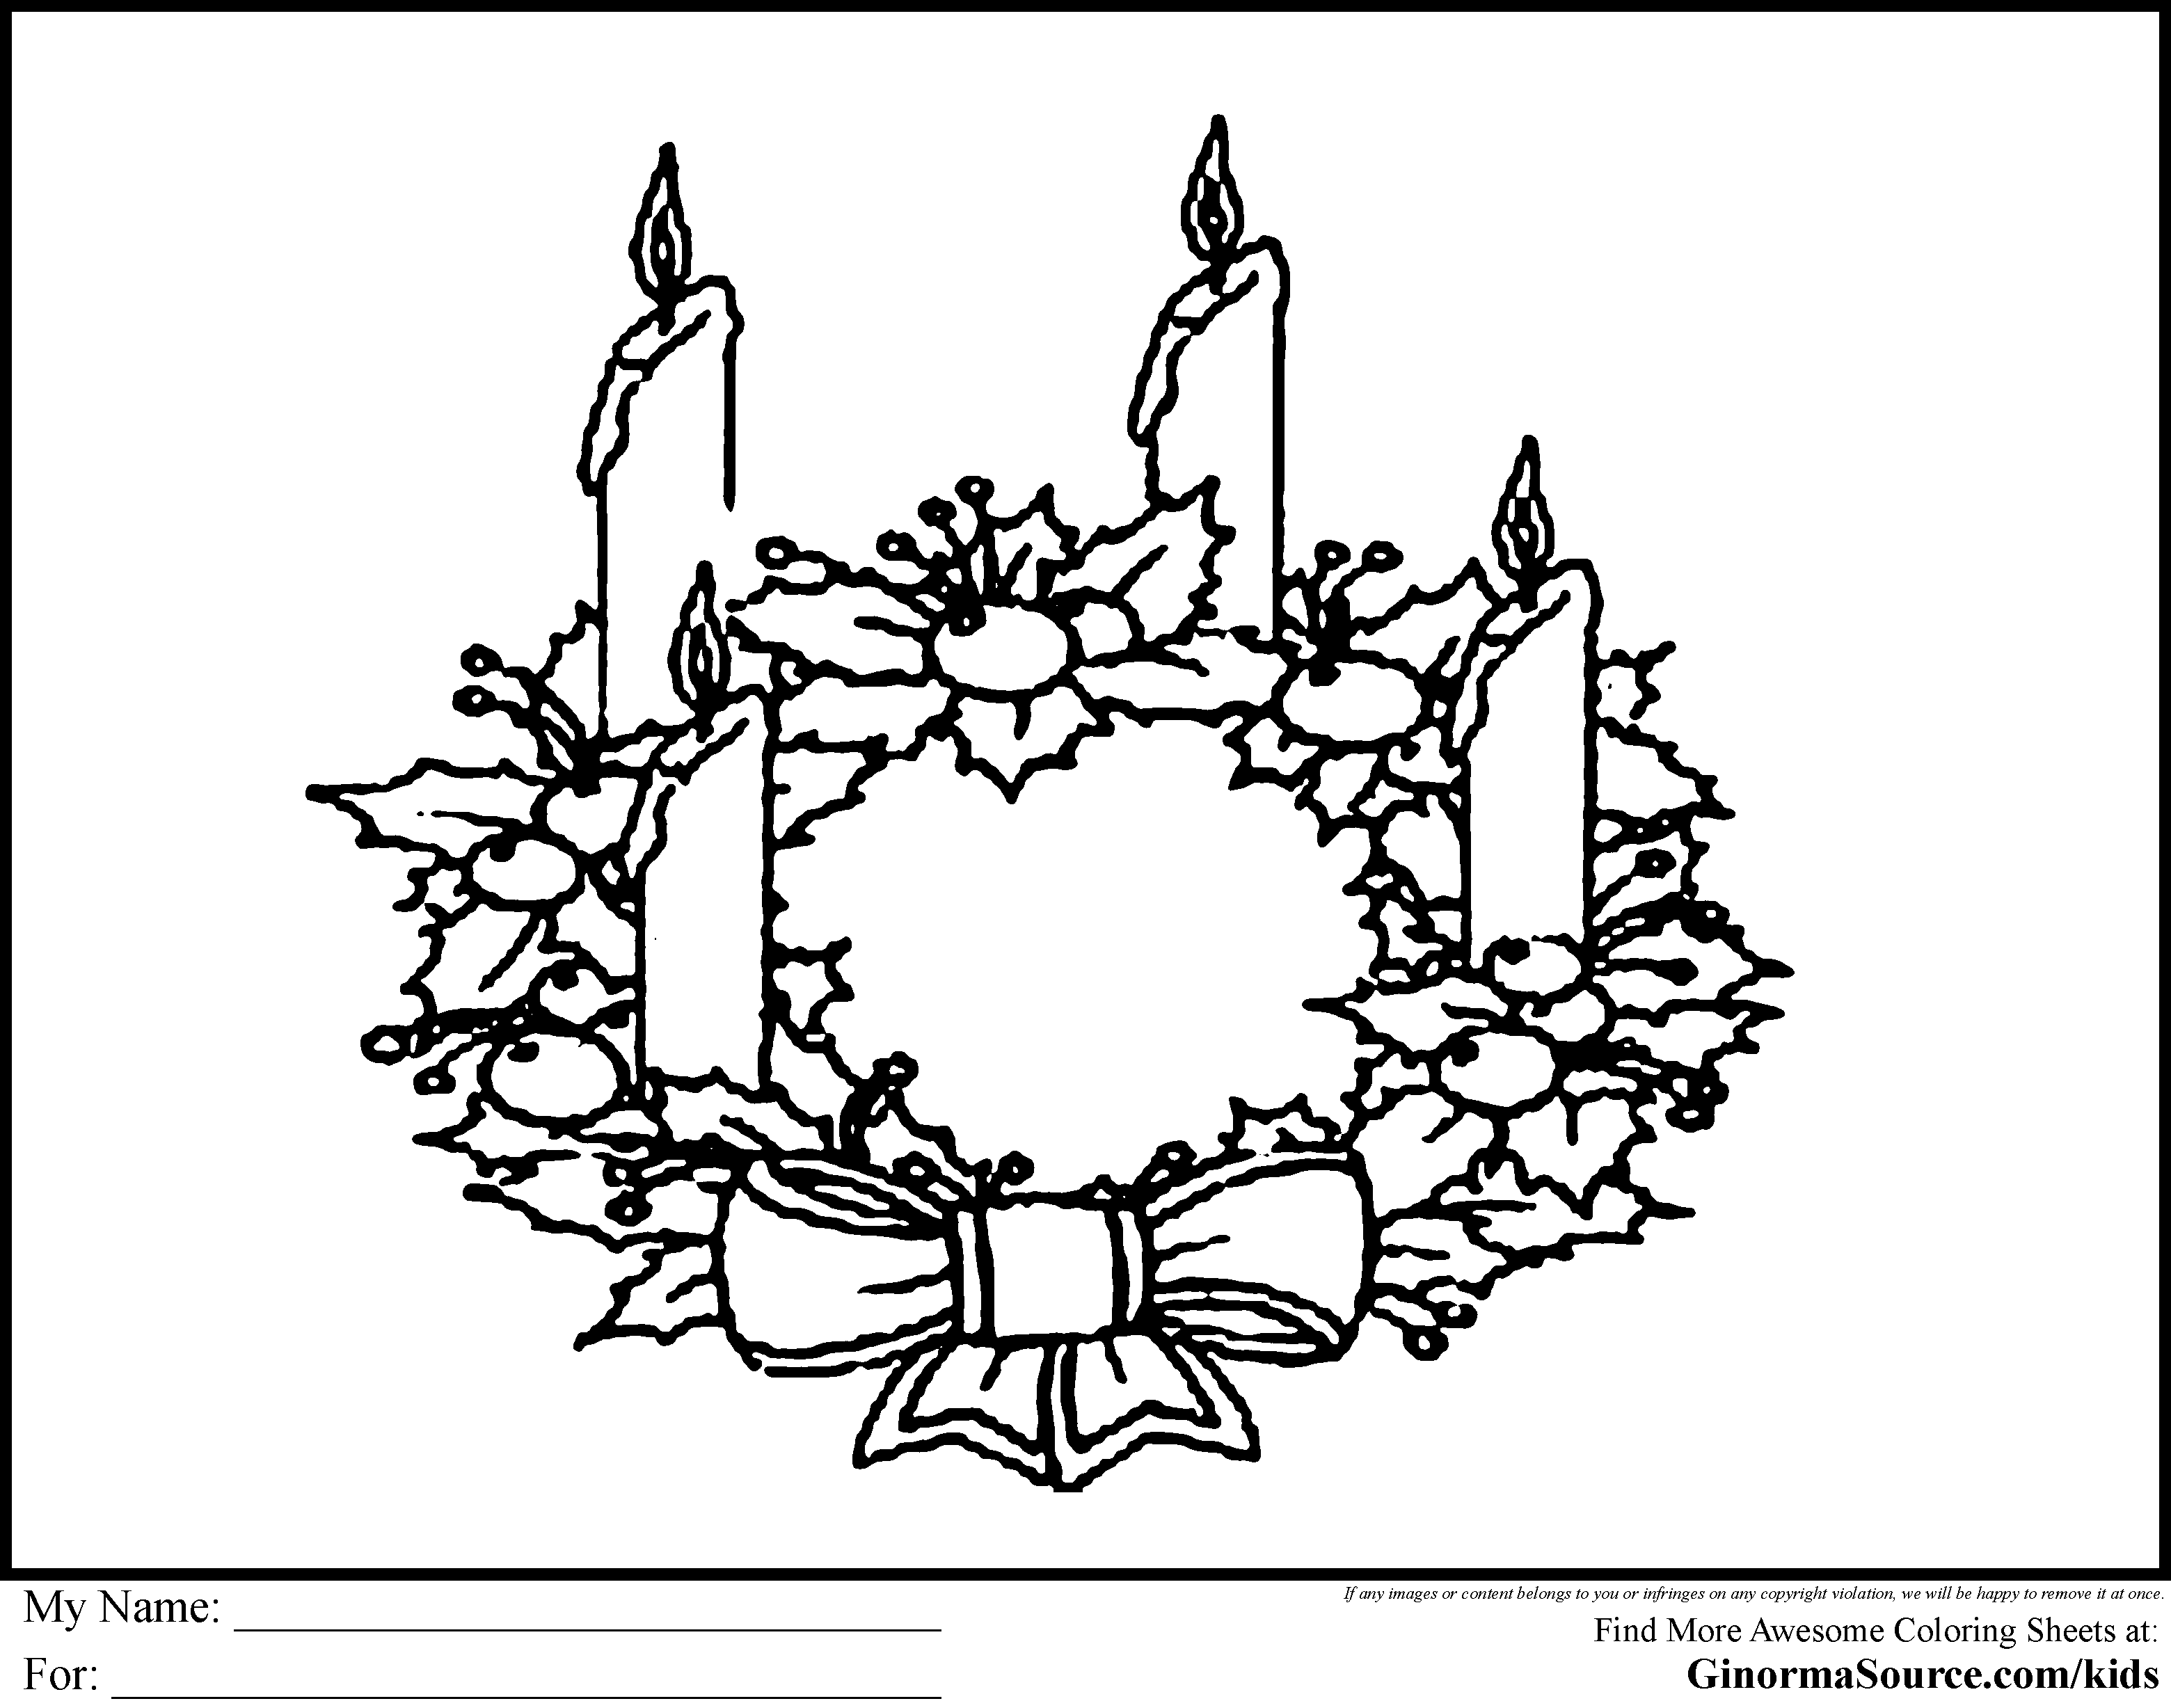 advent coloring page wreath is the green bough of a wreath with the four candles representing the four sundays of the advent season - Advent Coloring Pages